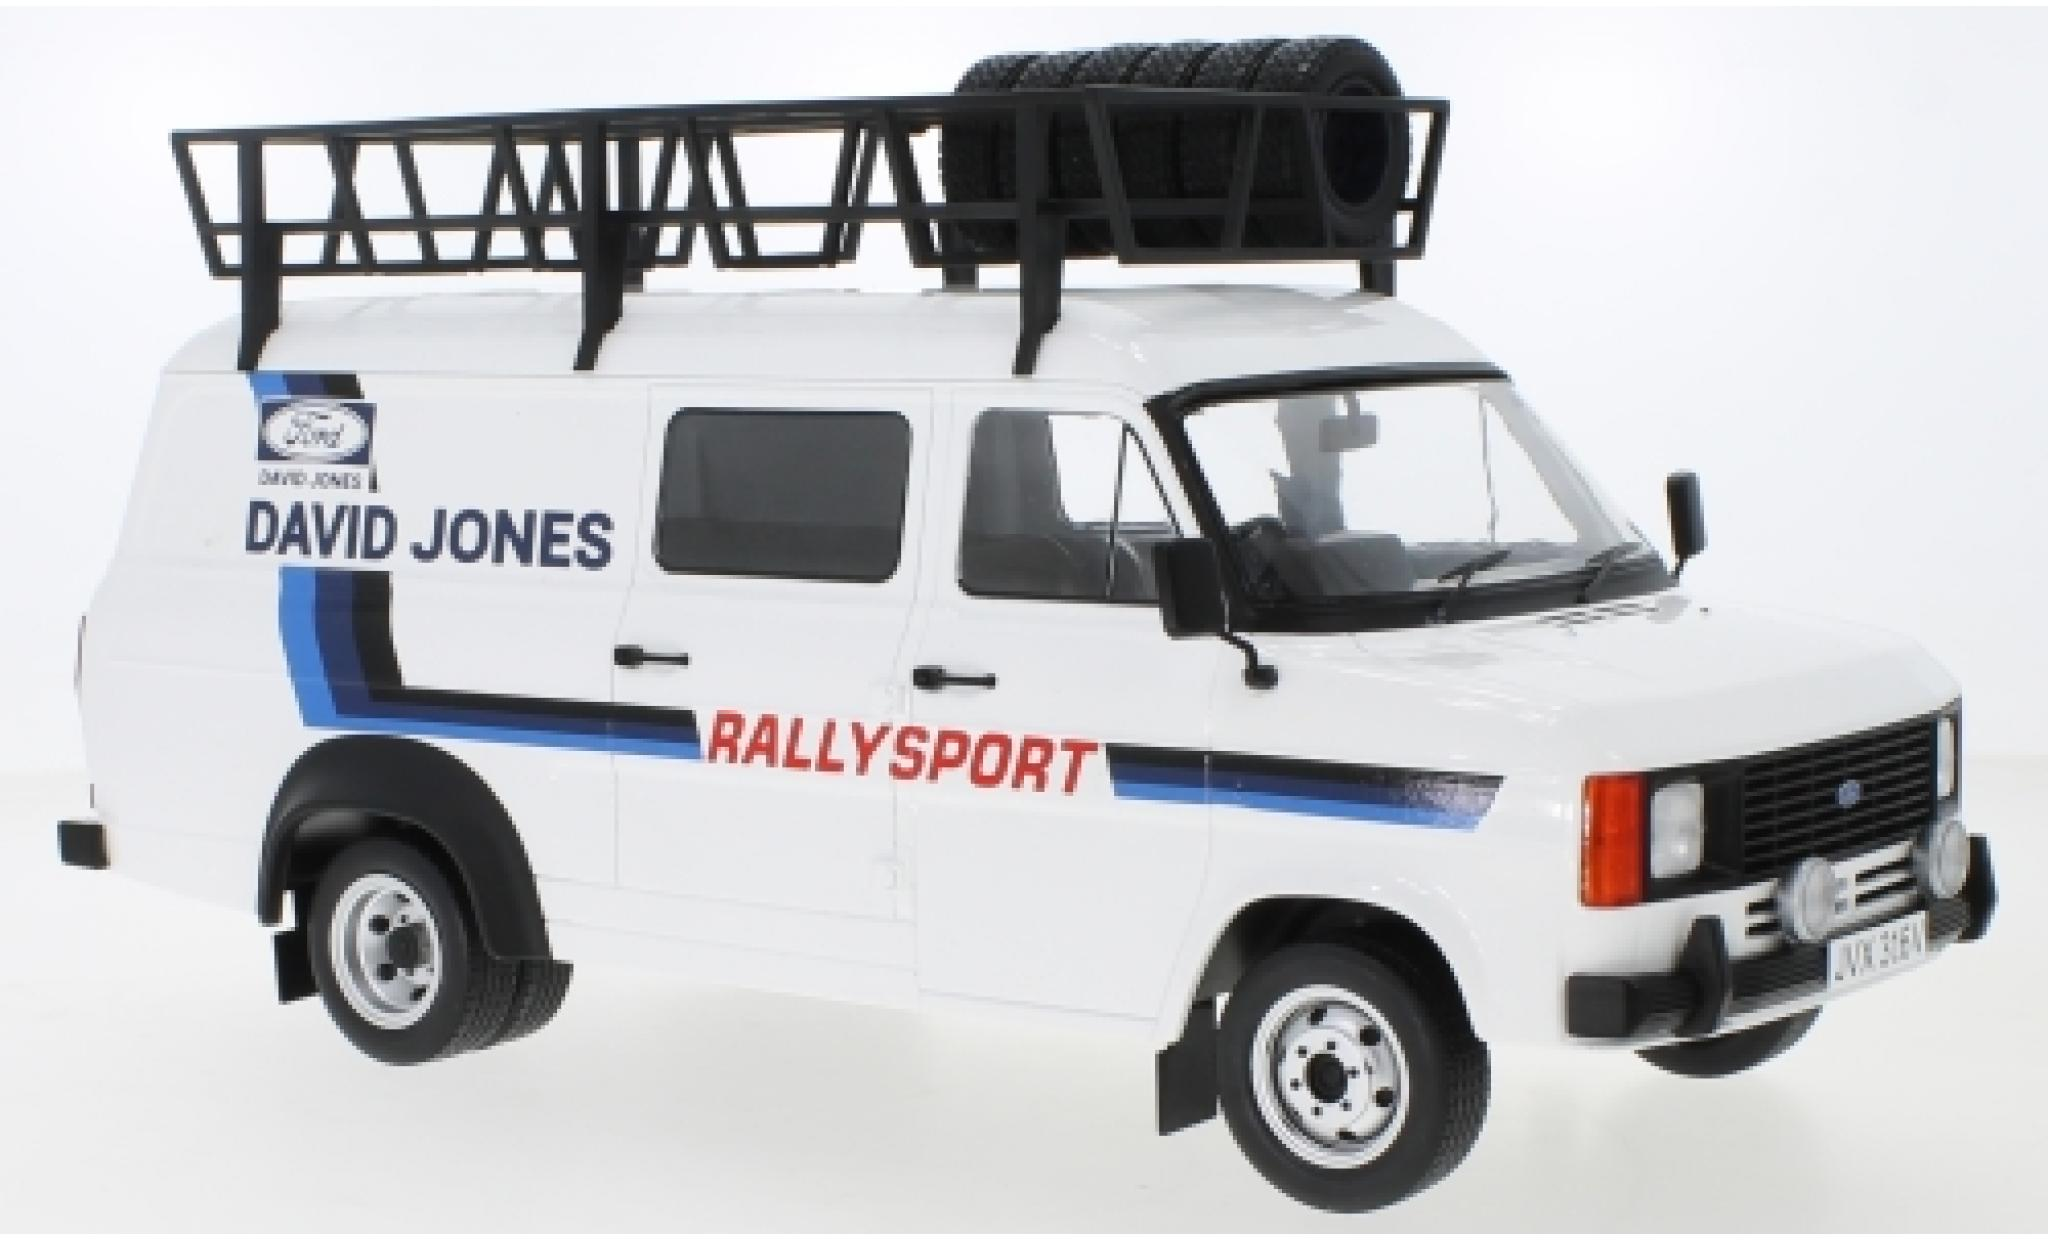 Ford Transit 1/18 IXO MK II David Jones with roof accessories